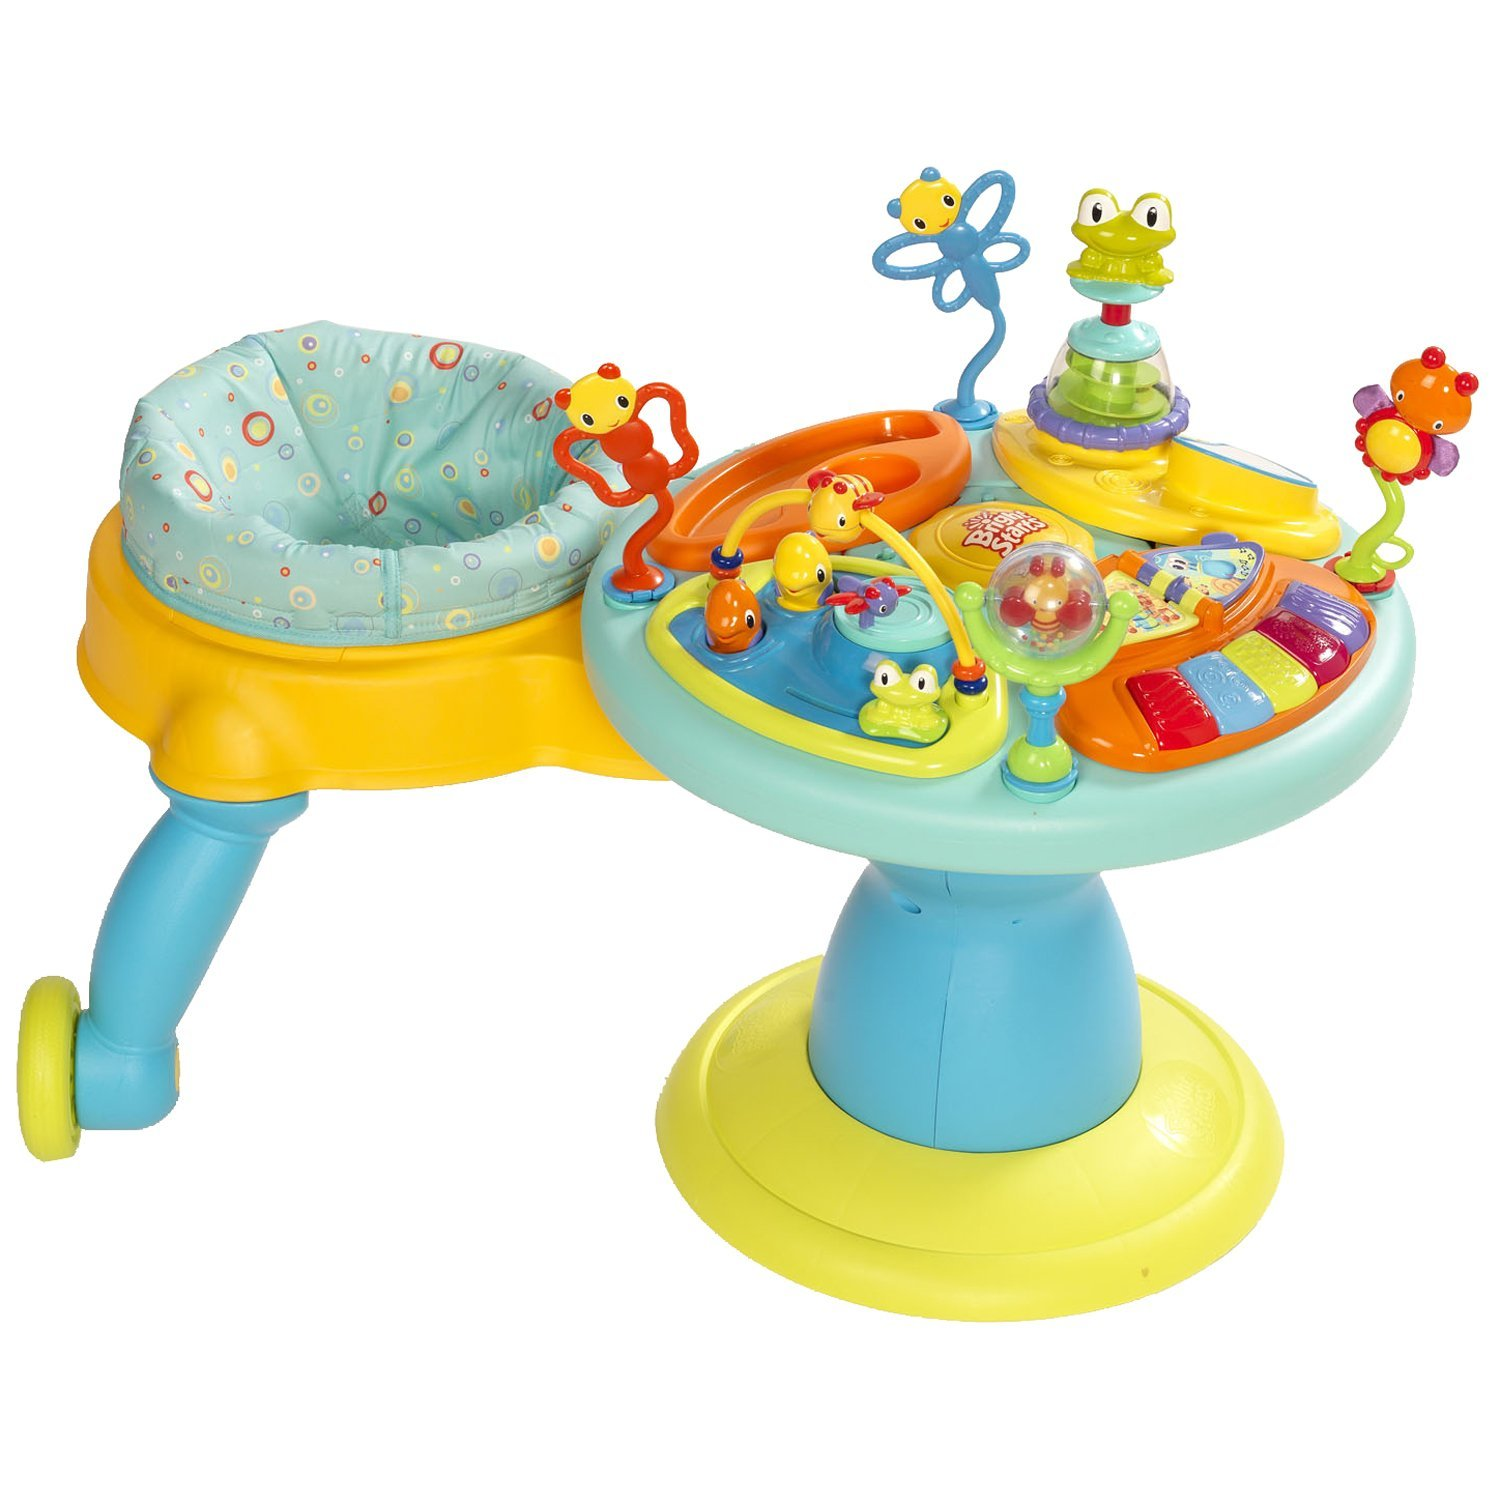 cheap baby einstein activity table. Black Bedroom Furniture Sets. Home Design Ideas